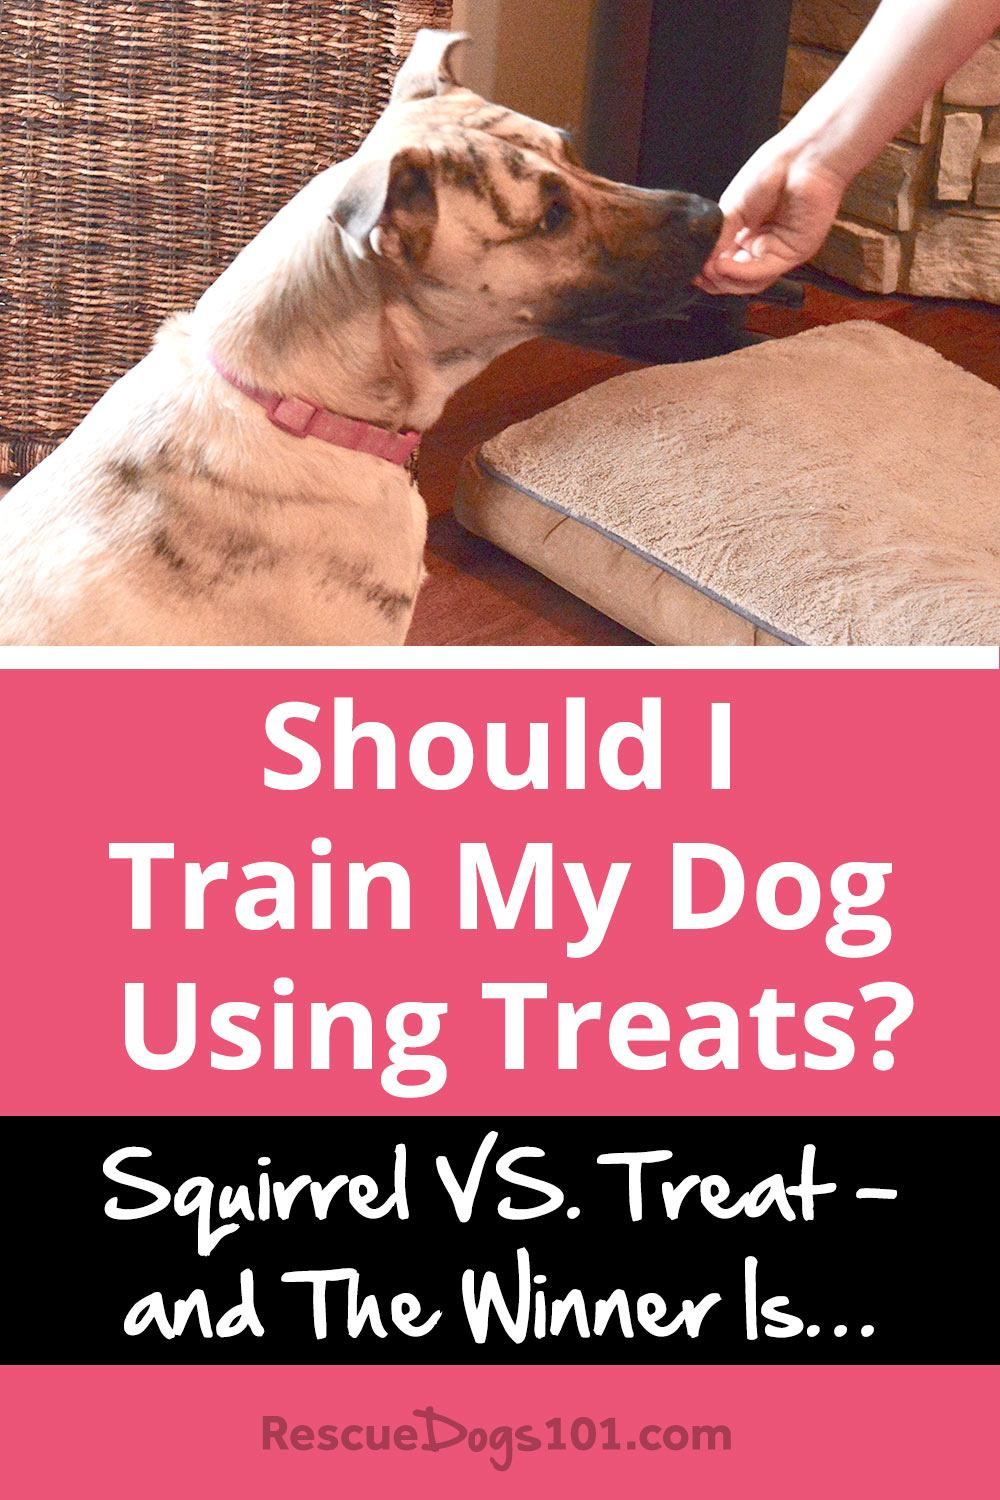 Should I train my dog using treats?